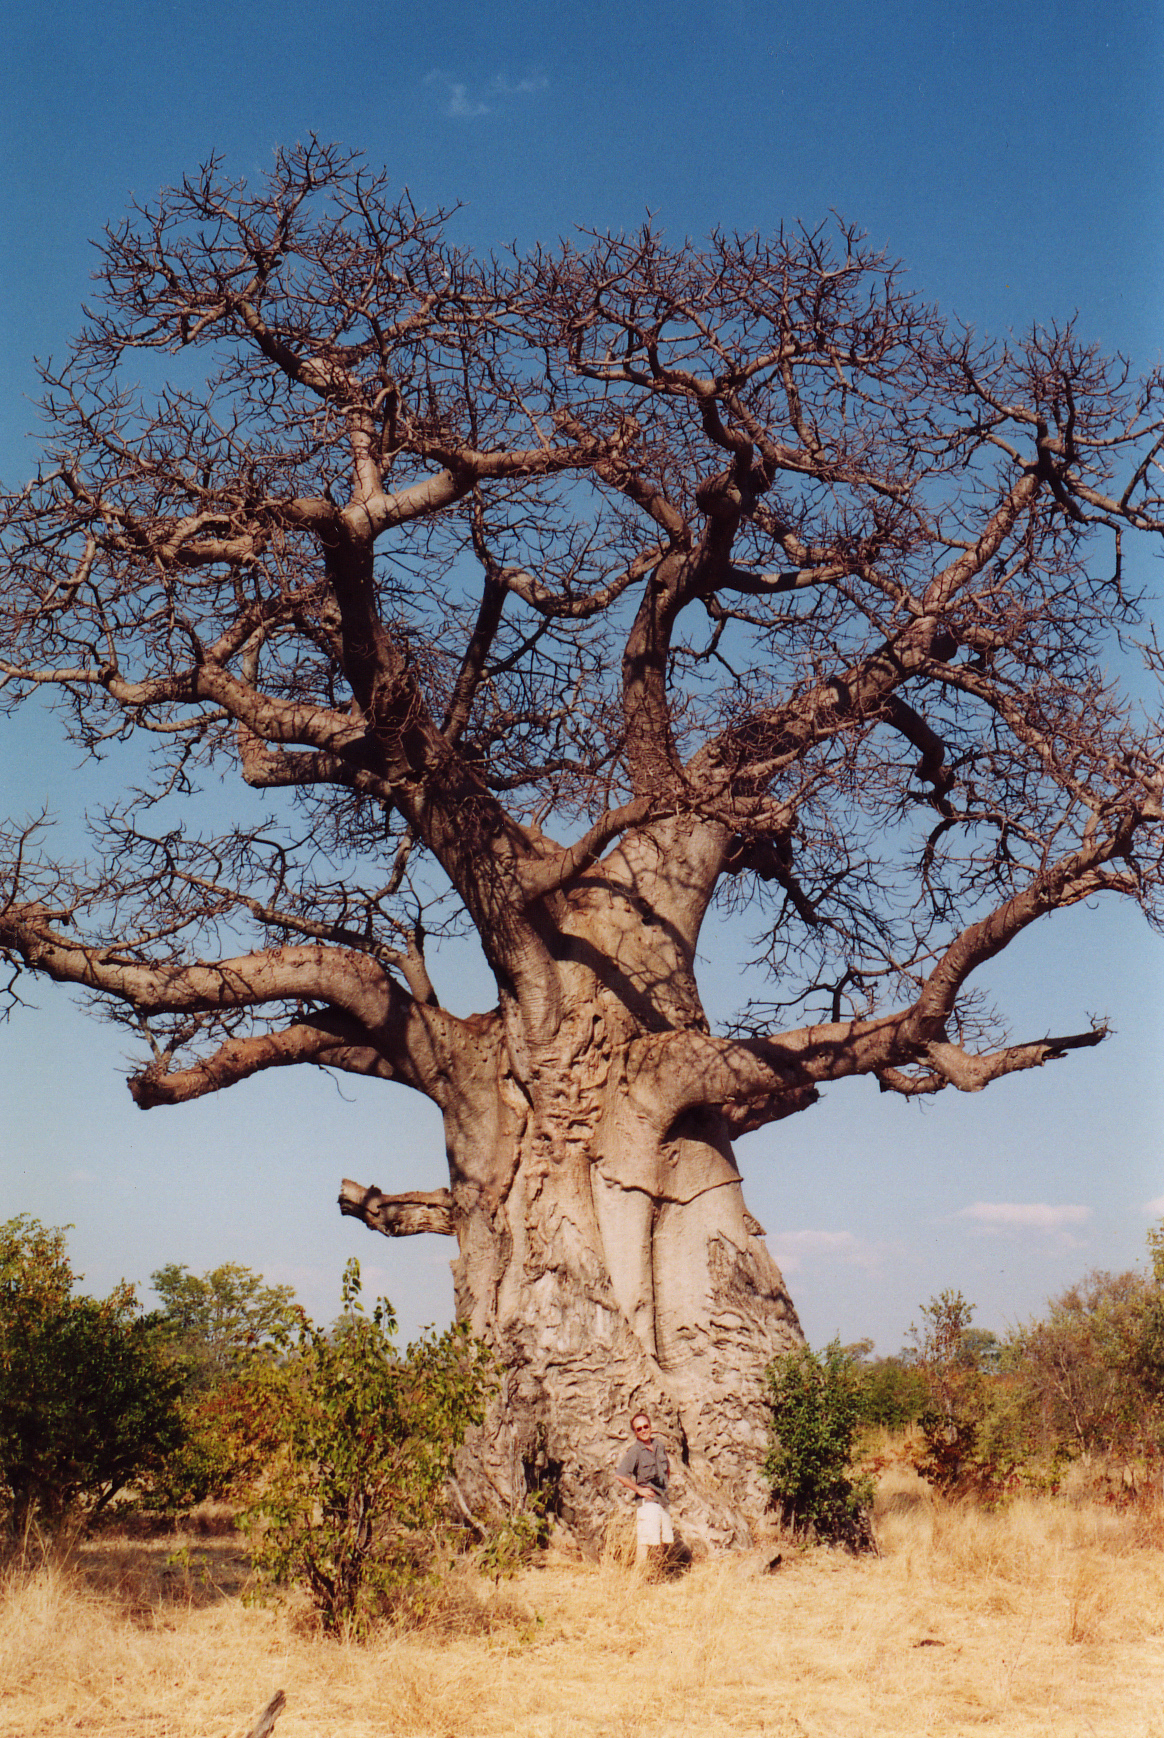 baobab tree by Quinn Norton [CC BY 2.0 (http://creativecommons.org/licenses/by/2.0)], via Wikimedia Commons